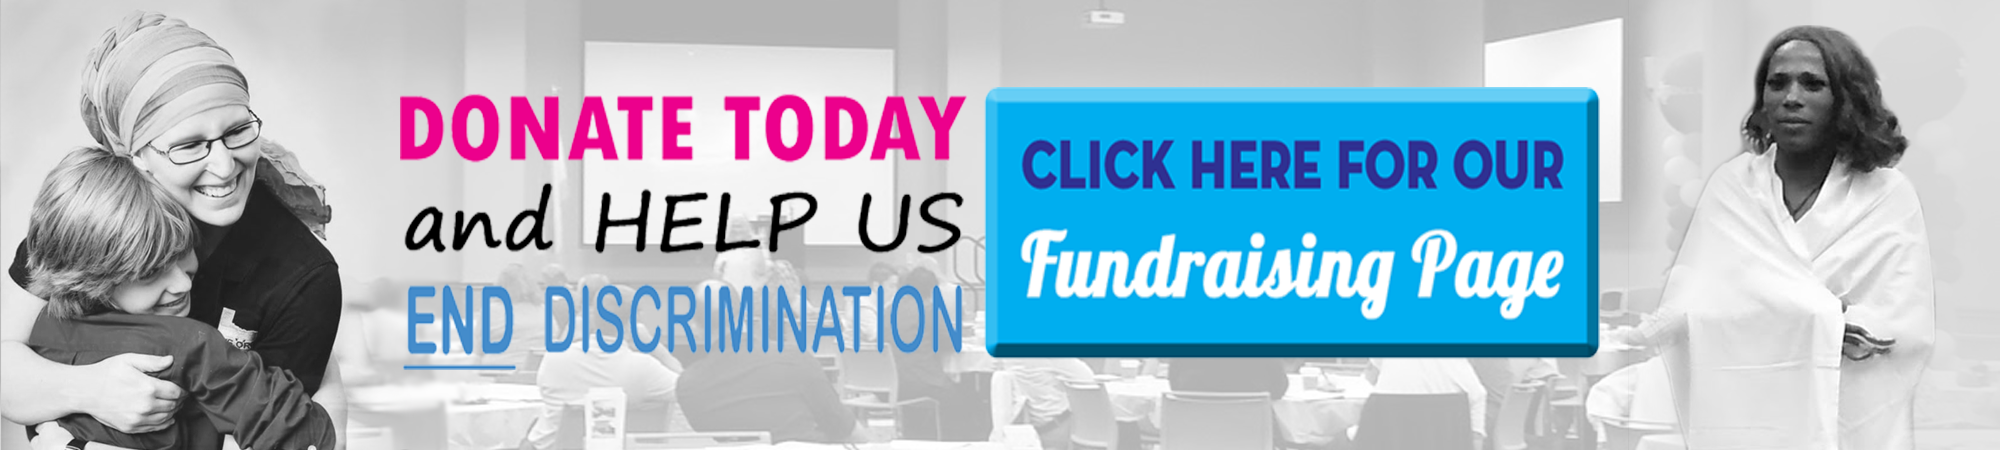 Donate-today-banner